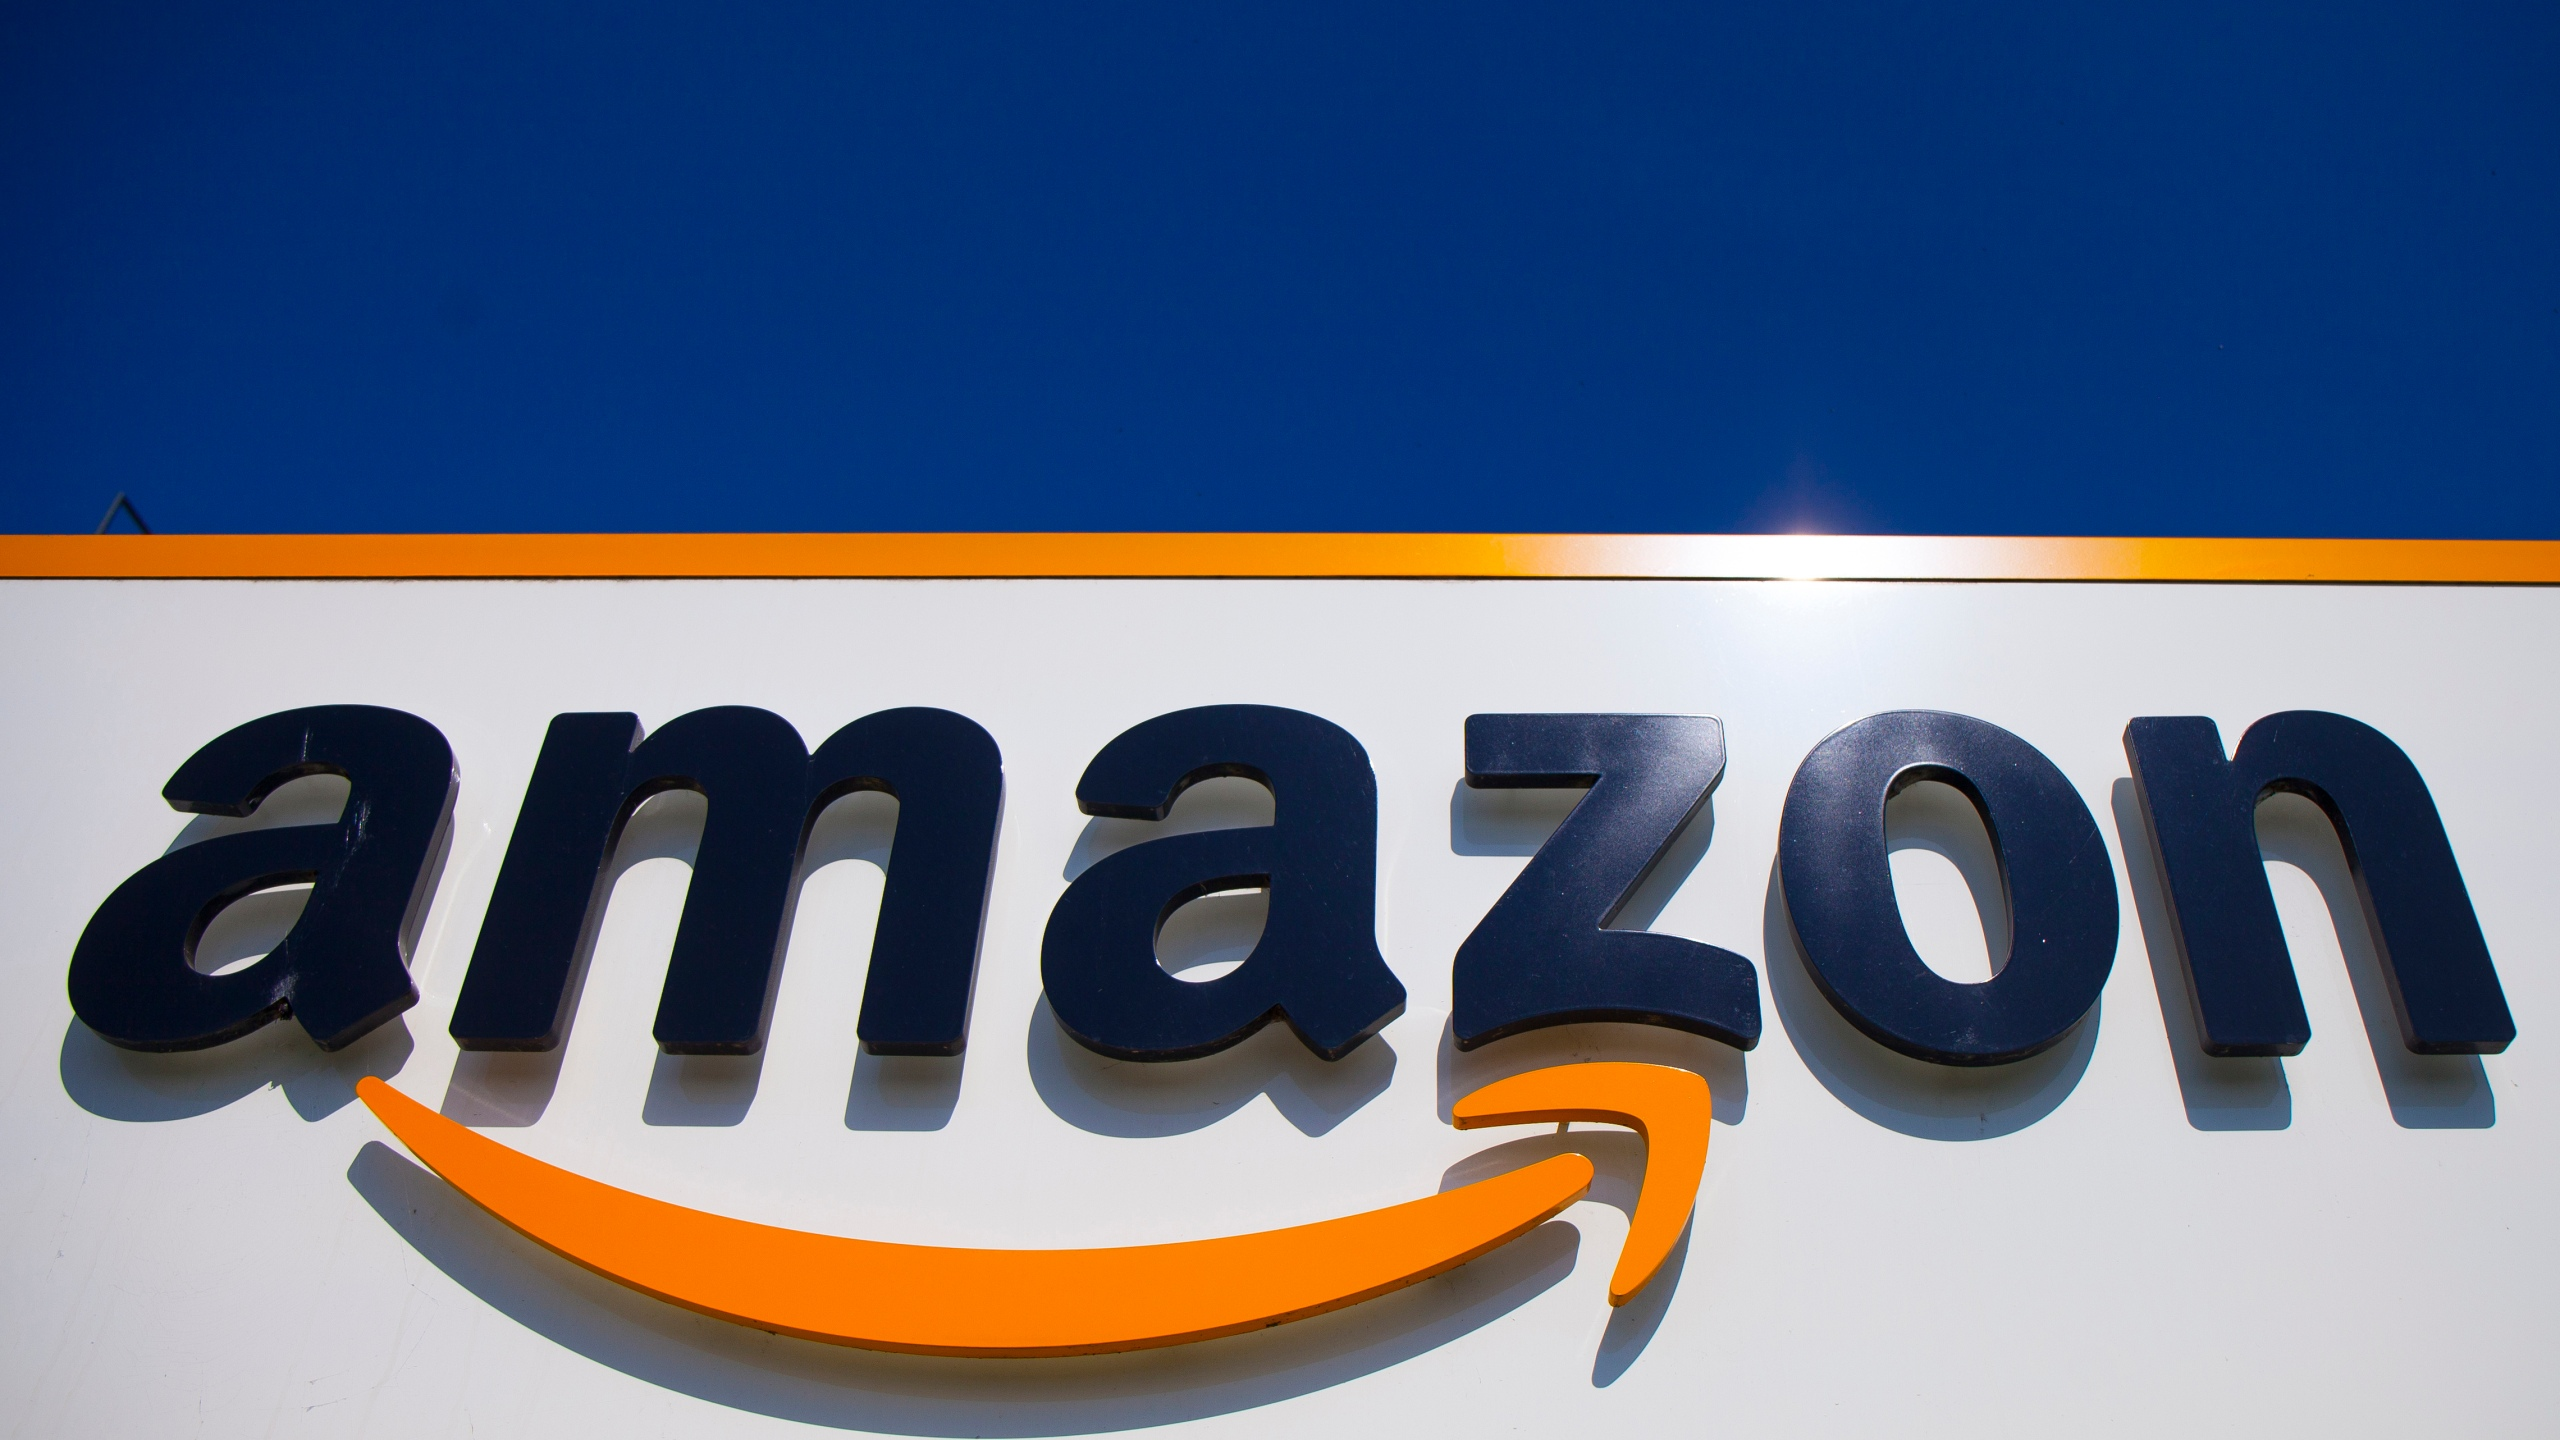 In this April 16, 2020, file photo, the Amazon logo is displayed in Douai, northern France. (AP Photo/Michel Spingler, File)